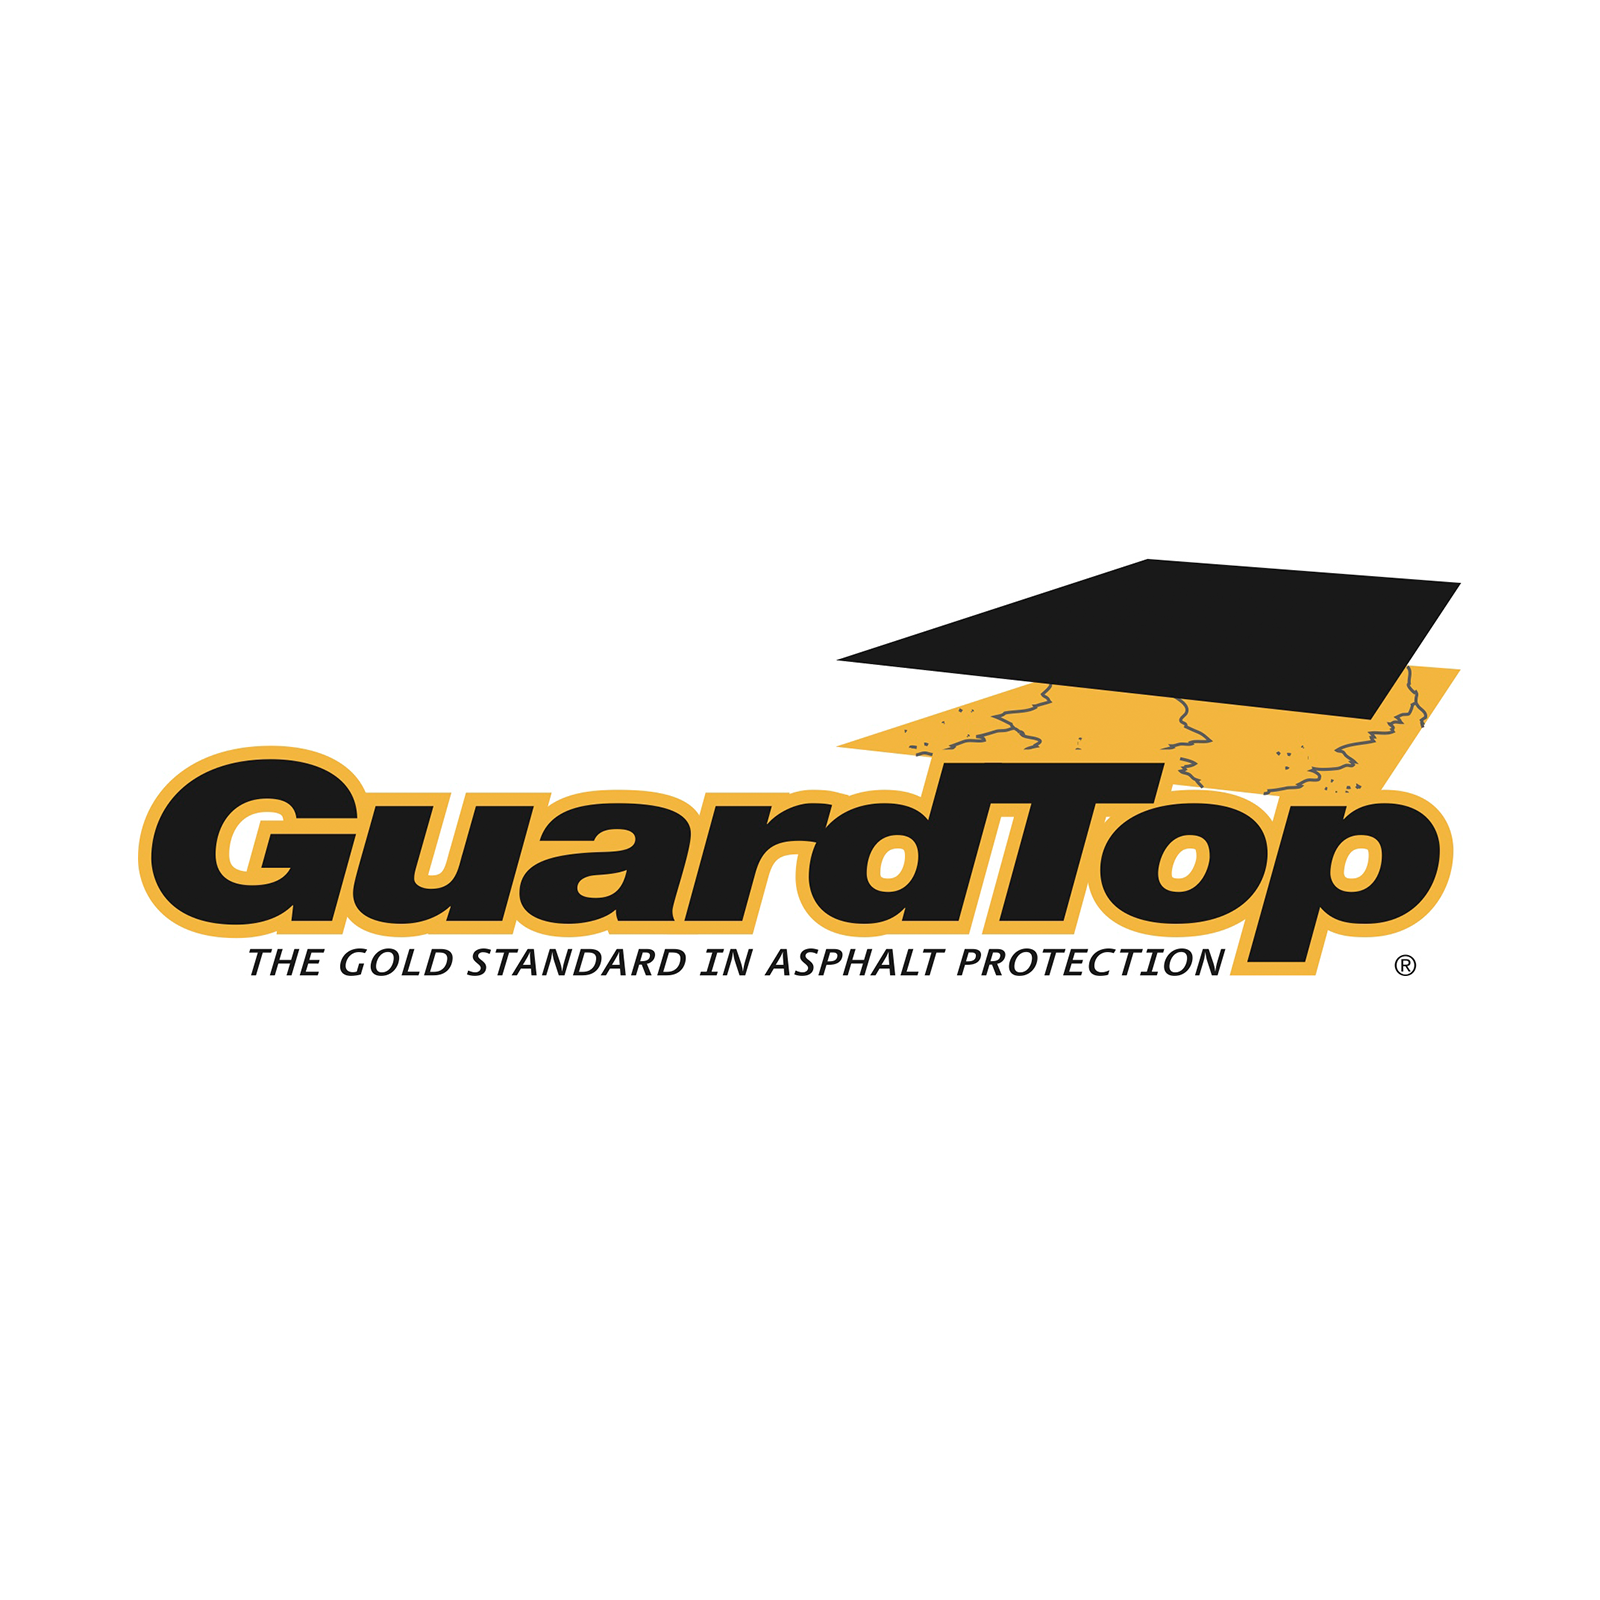 PARTNERED WITH GAURD TOP - GuardTop Asphalt Based Sealcoat is specifically formulated from unique base stocks and mineral aggregates and is designed to protect and beautify existing asphalt surfaces. It contains no coal-tar and remains environmentally friendly.